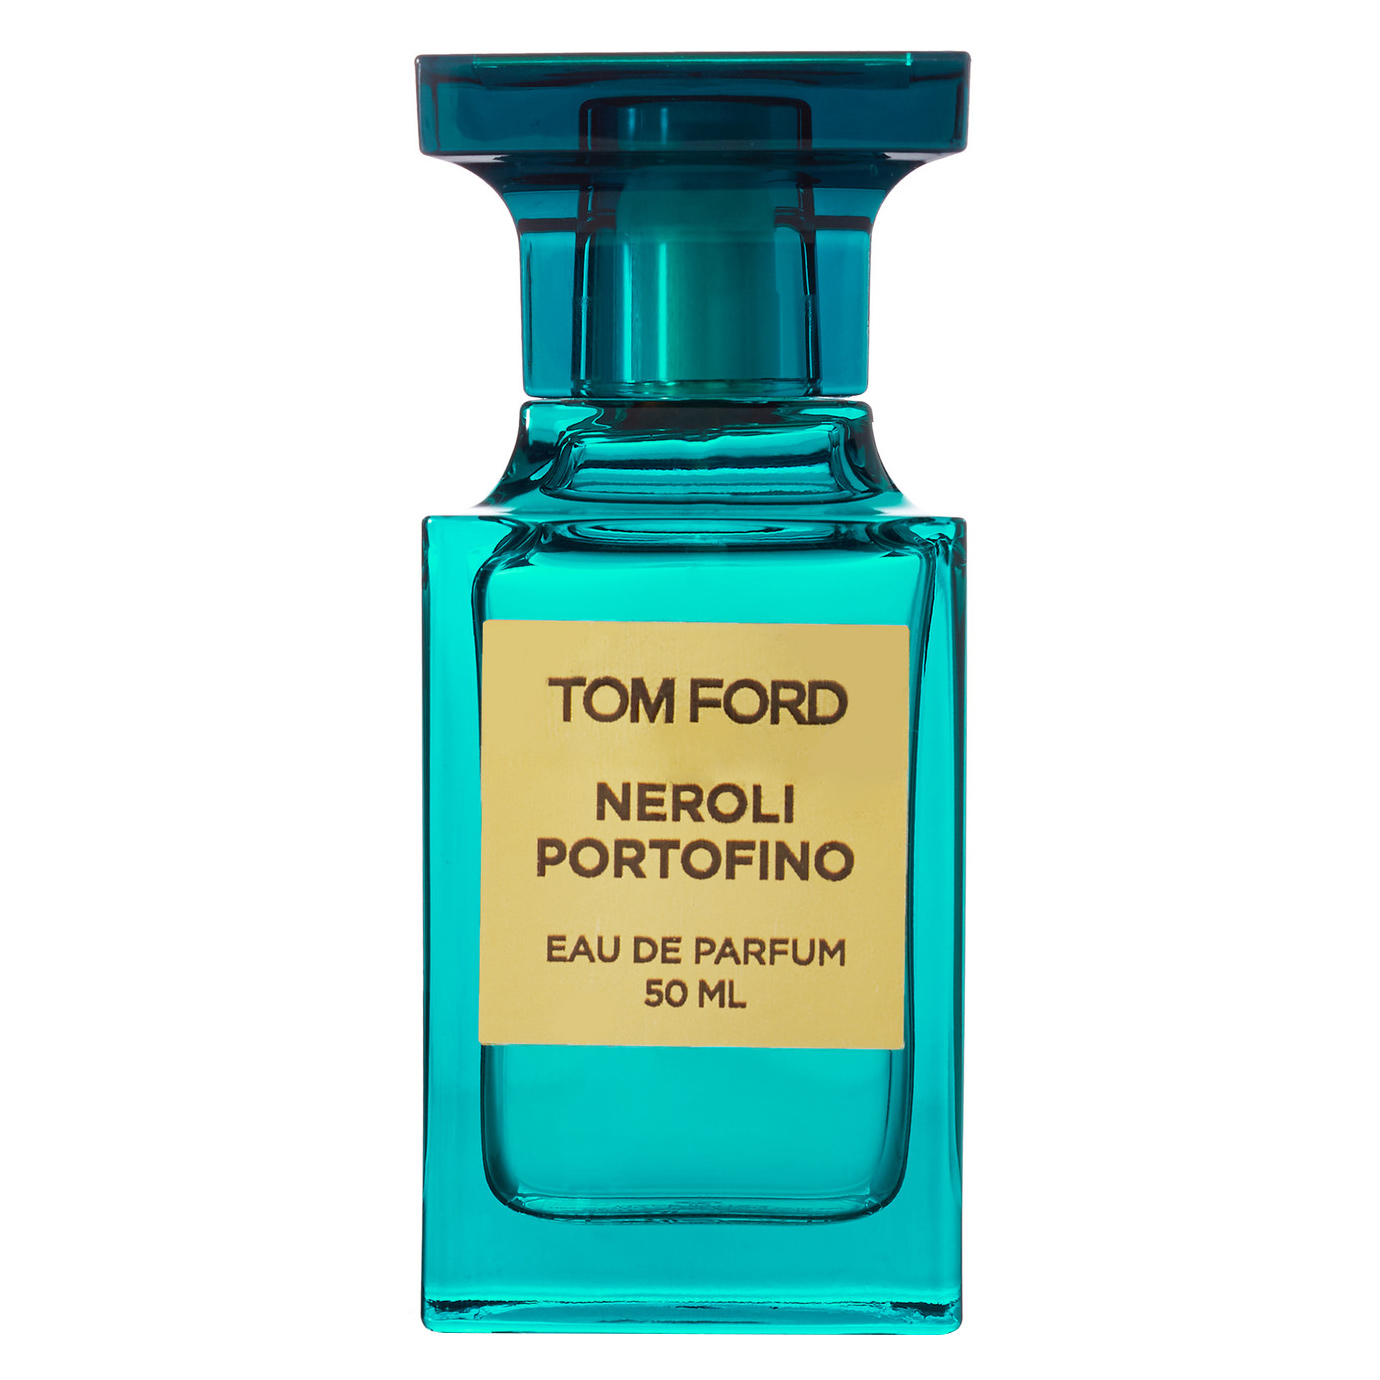 TOM FORD BEAUTY Neroli Portofino Eau de Parfum